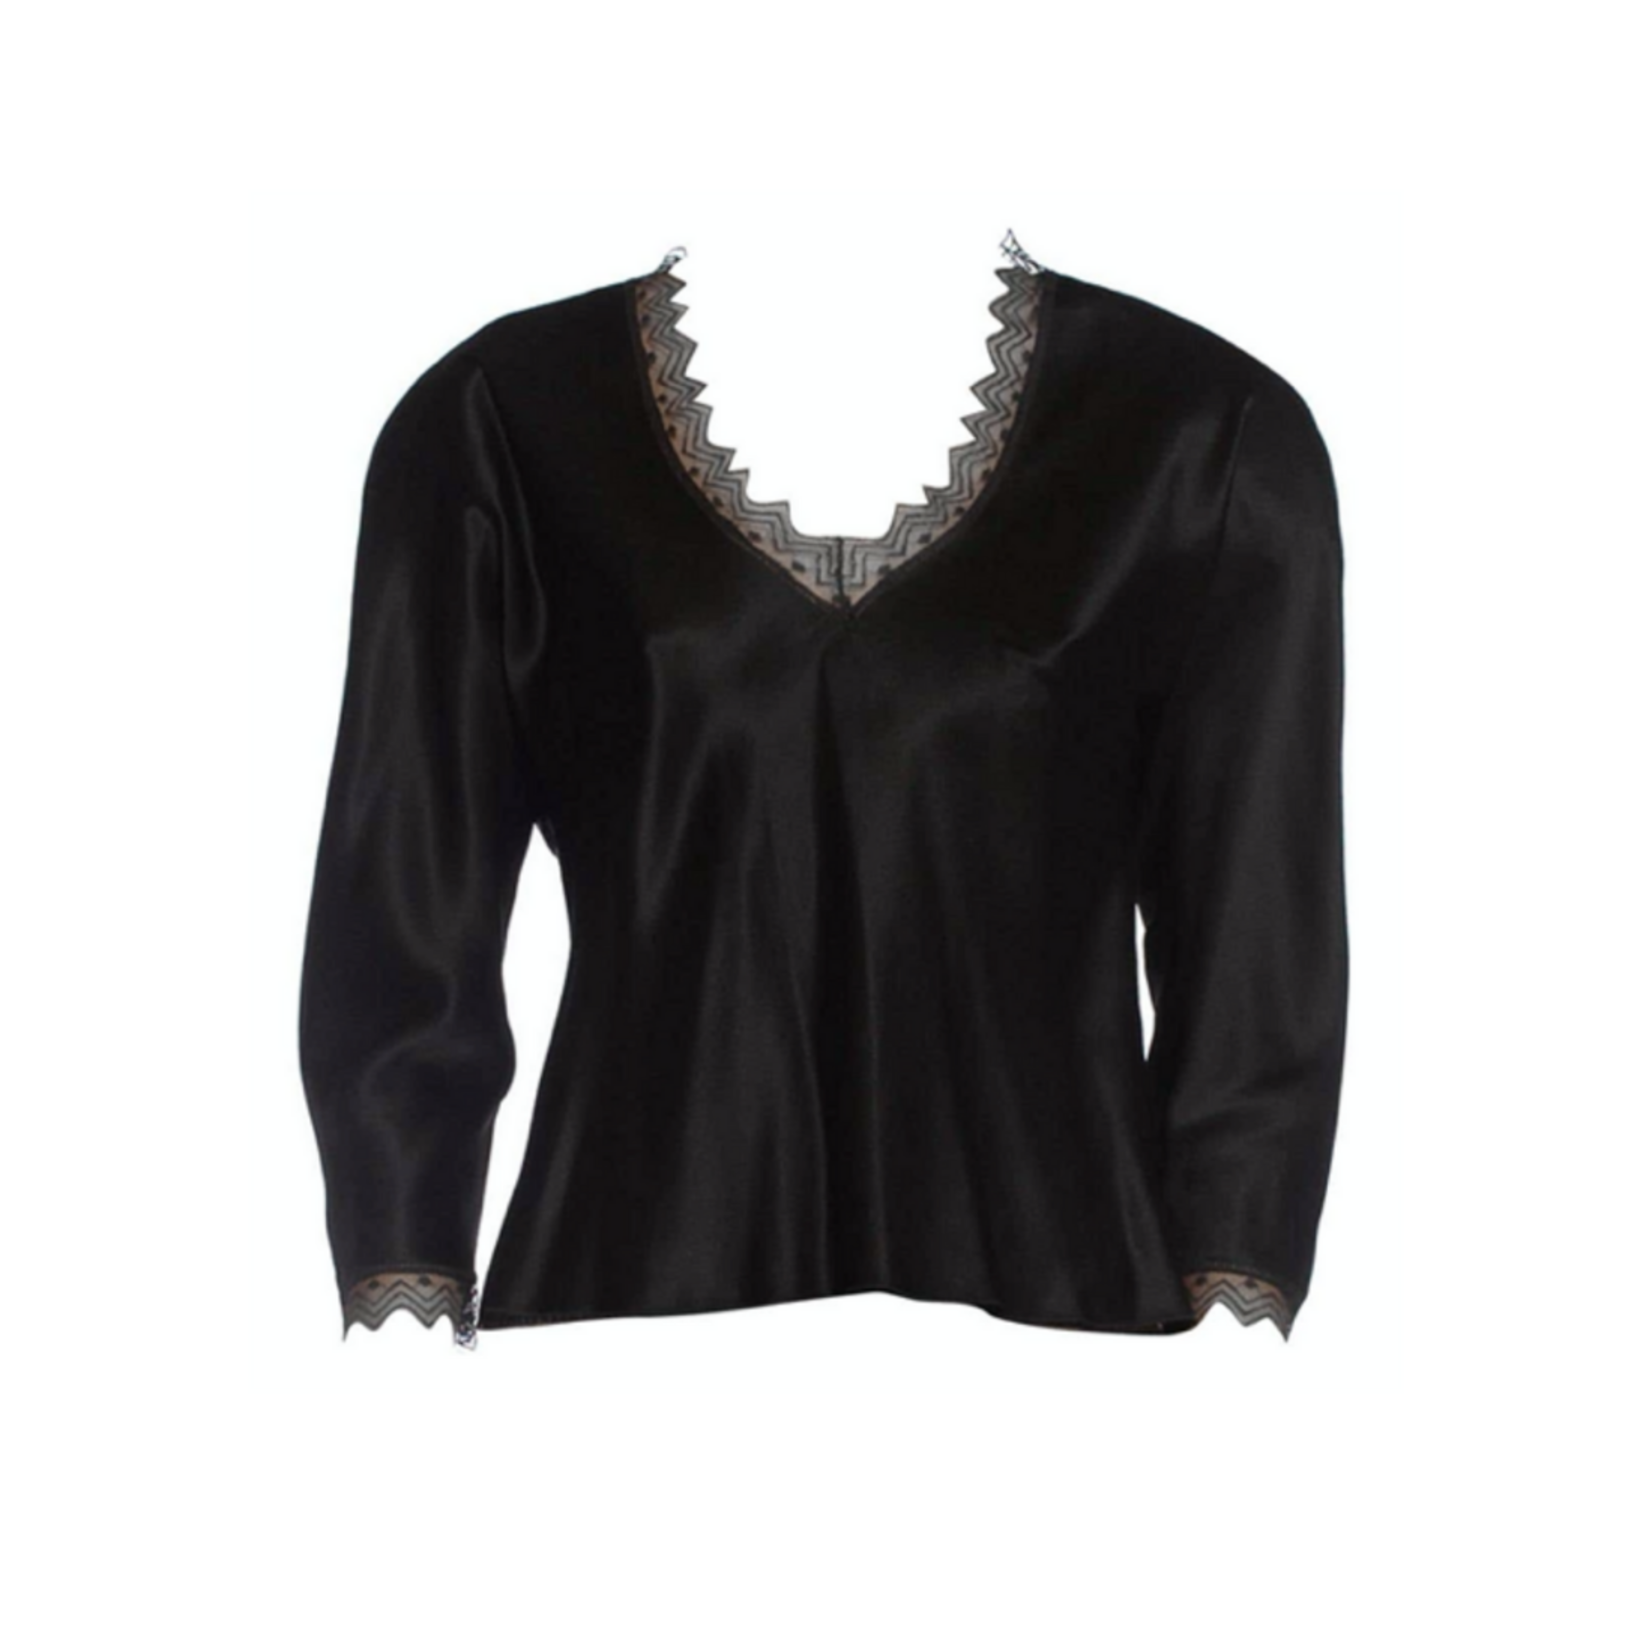 Wyld Blue Vintage 1980s JACKIE ROGERS Black Silk Charmeuse Lace Trimmed Blouse DST9ON43083